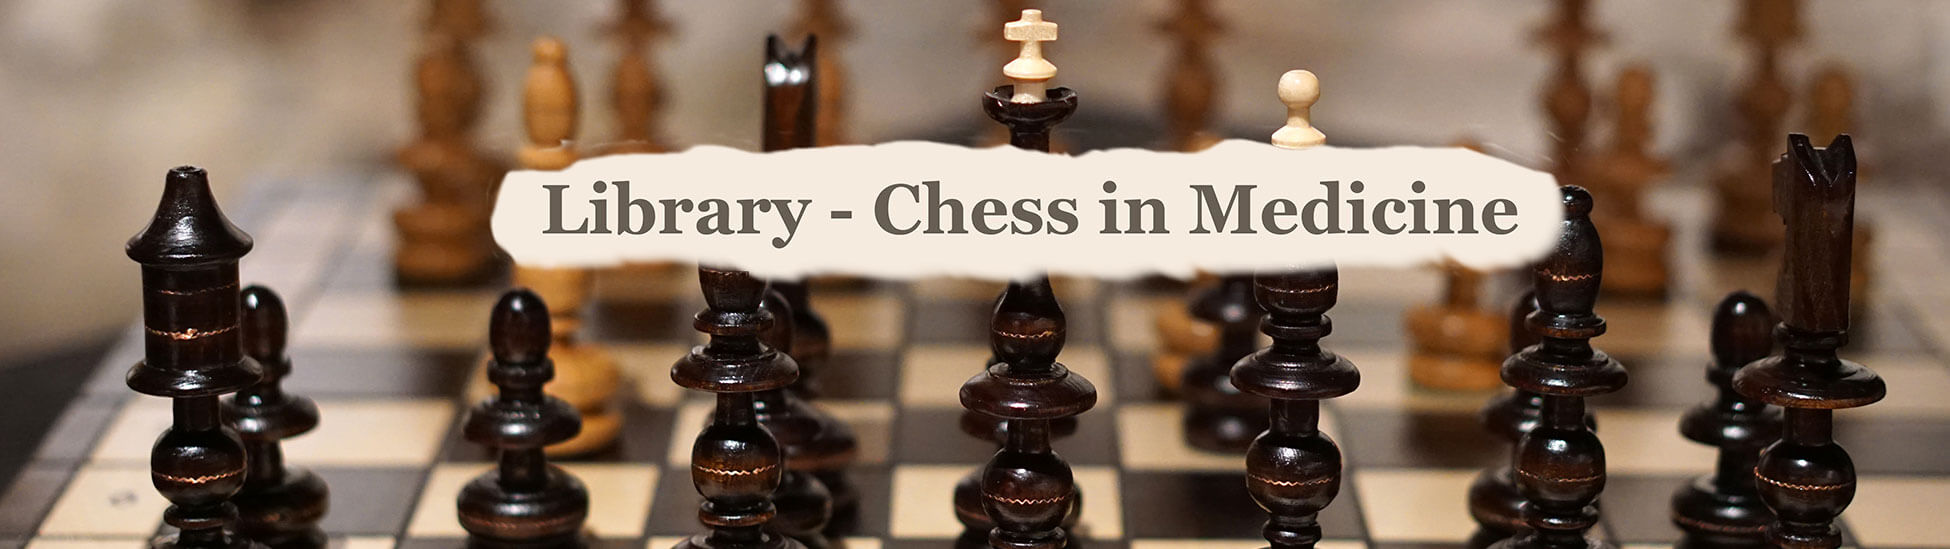 Library - Chess in Medicine